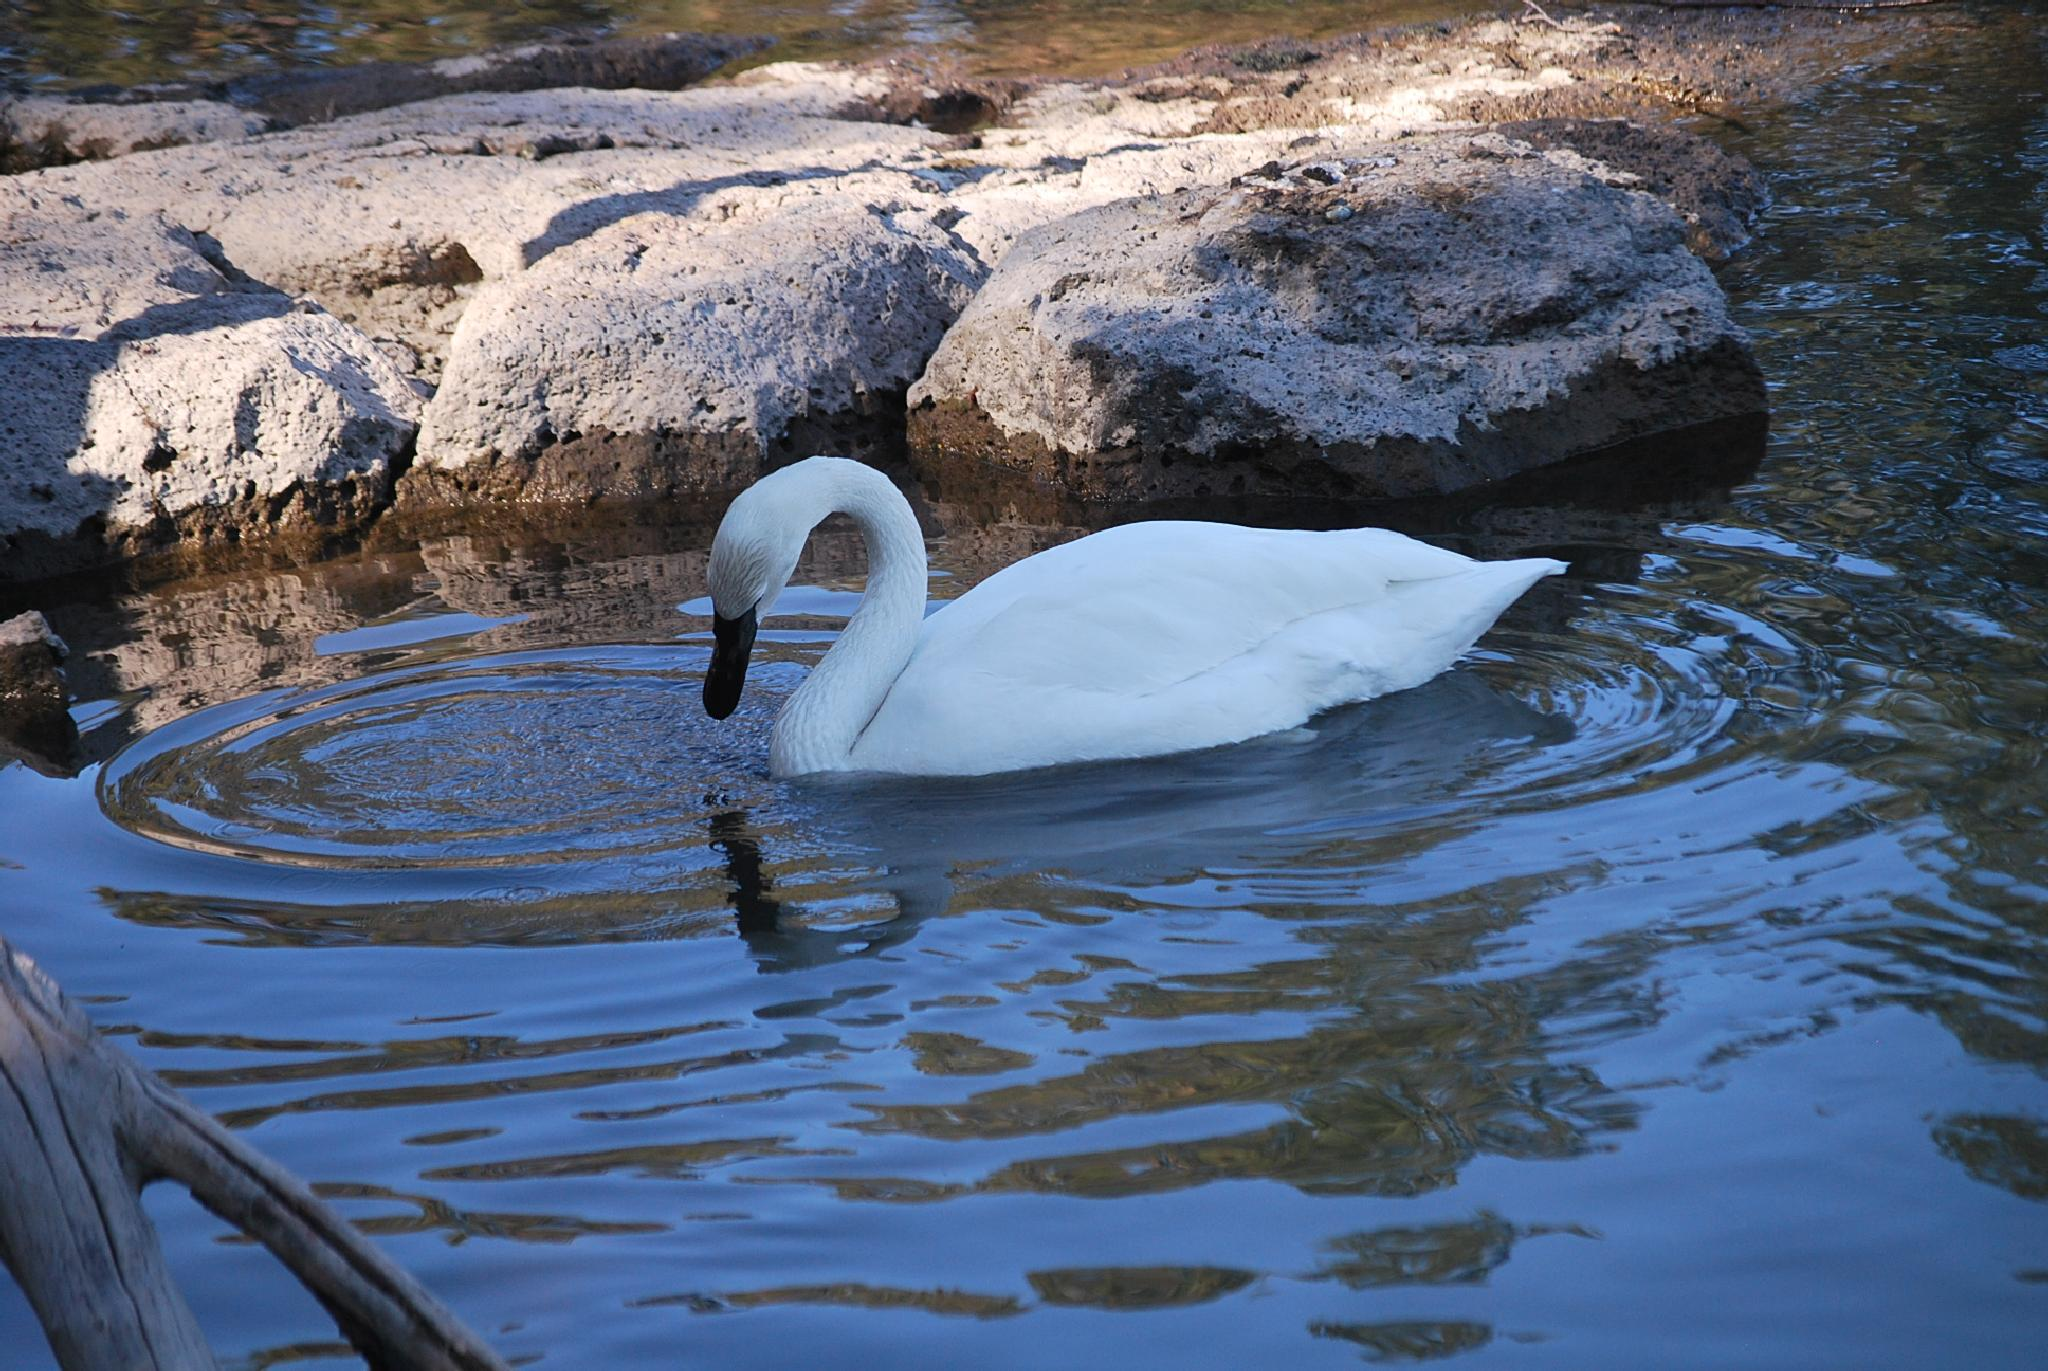 Swan on water by marilyn wirtz